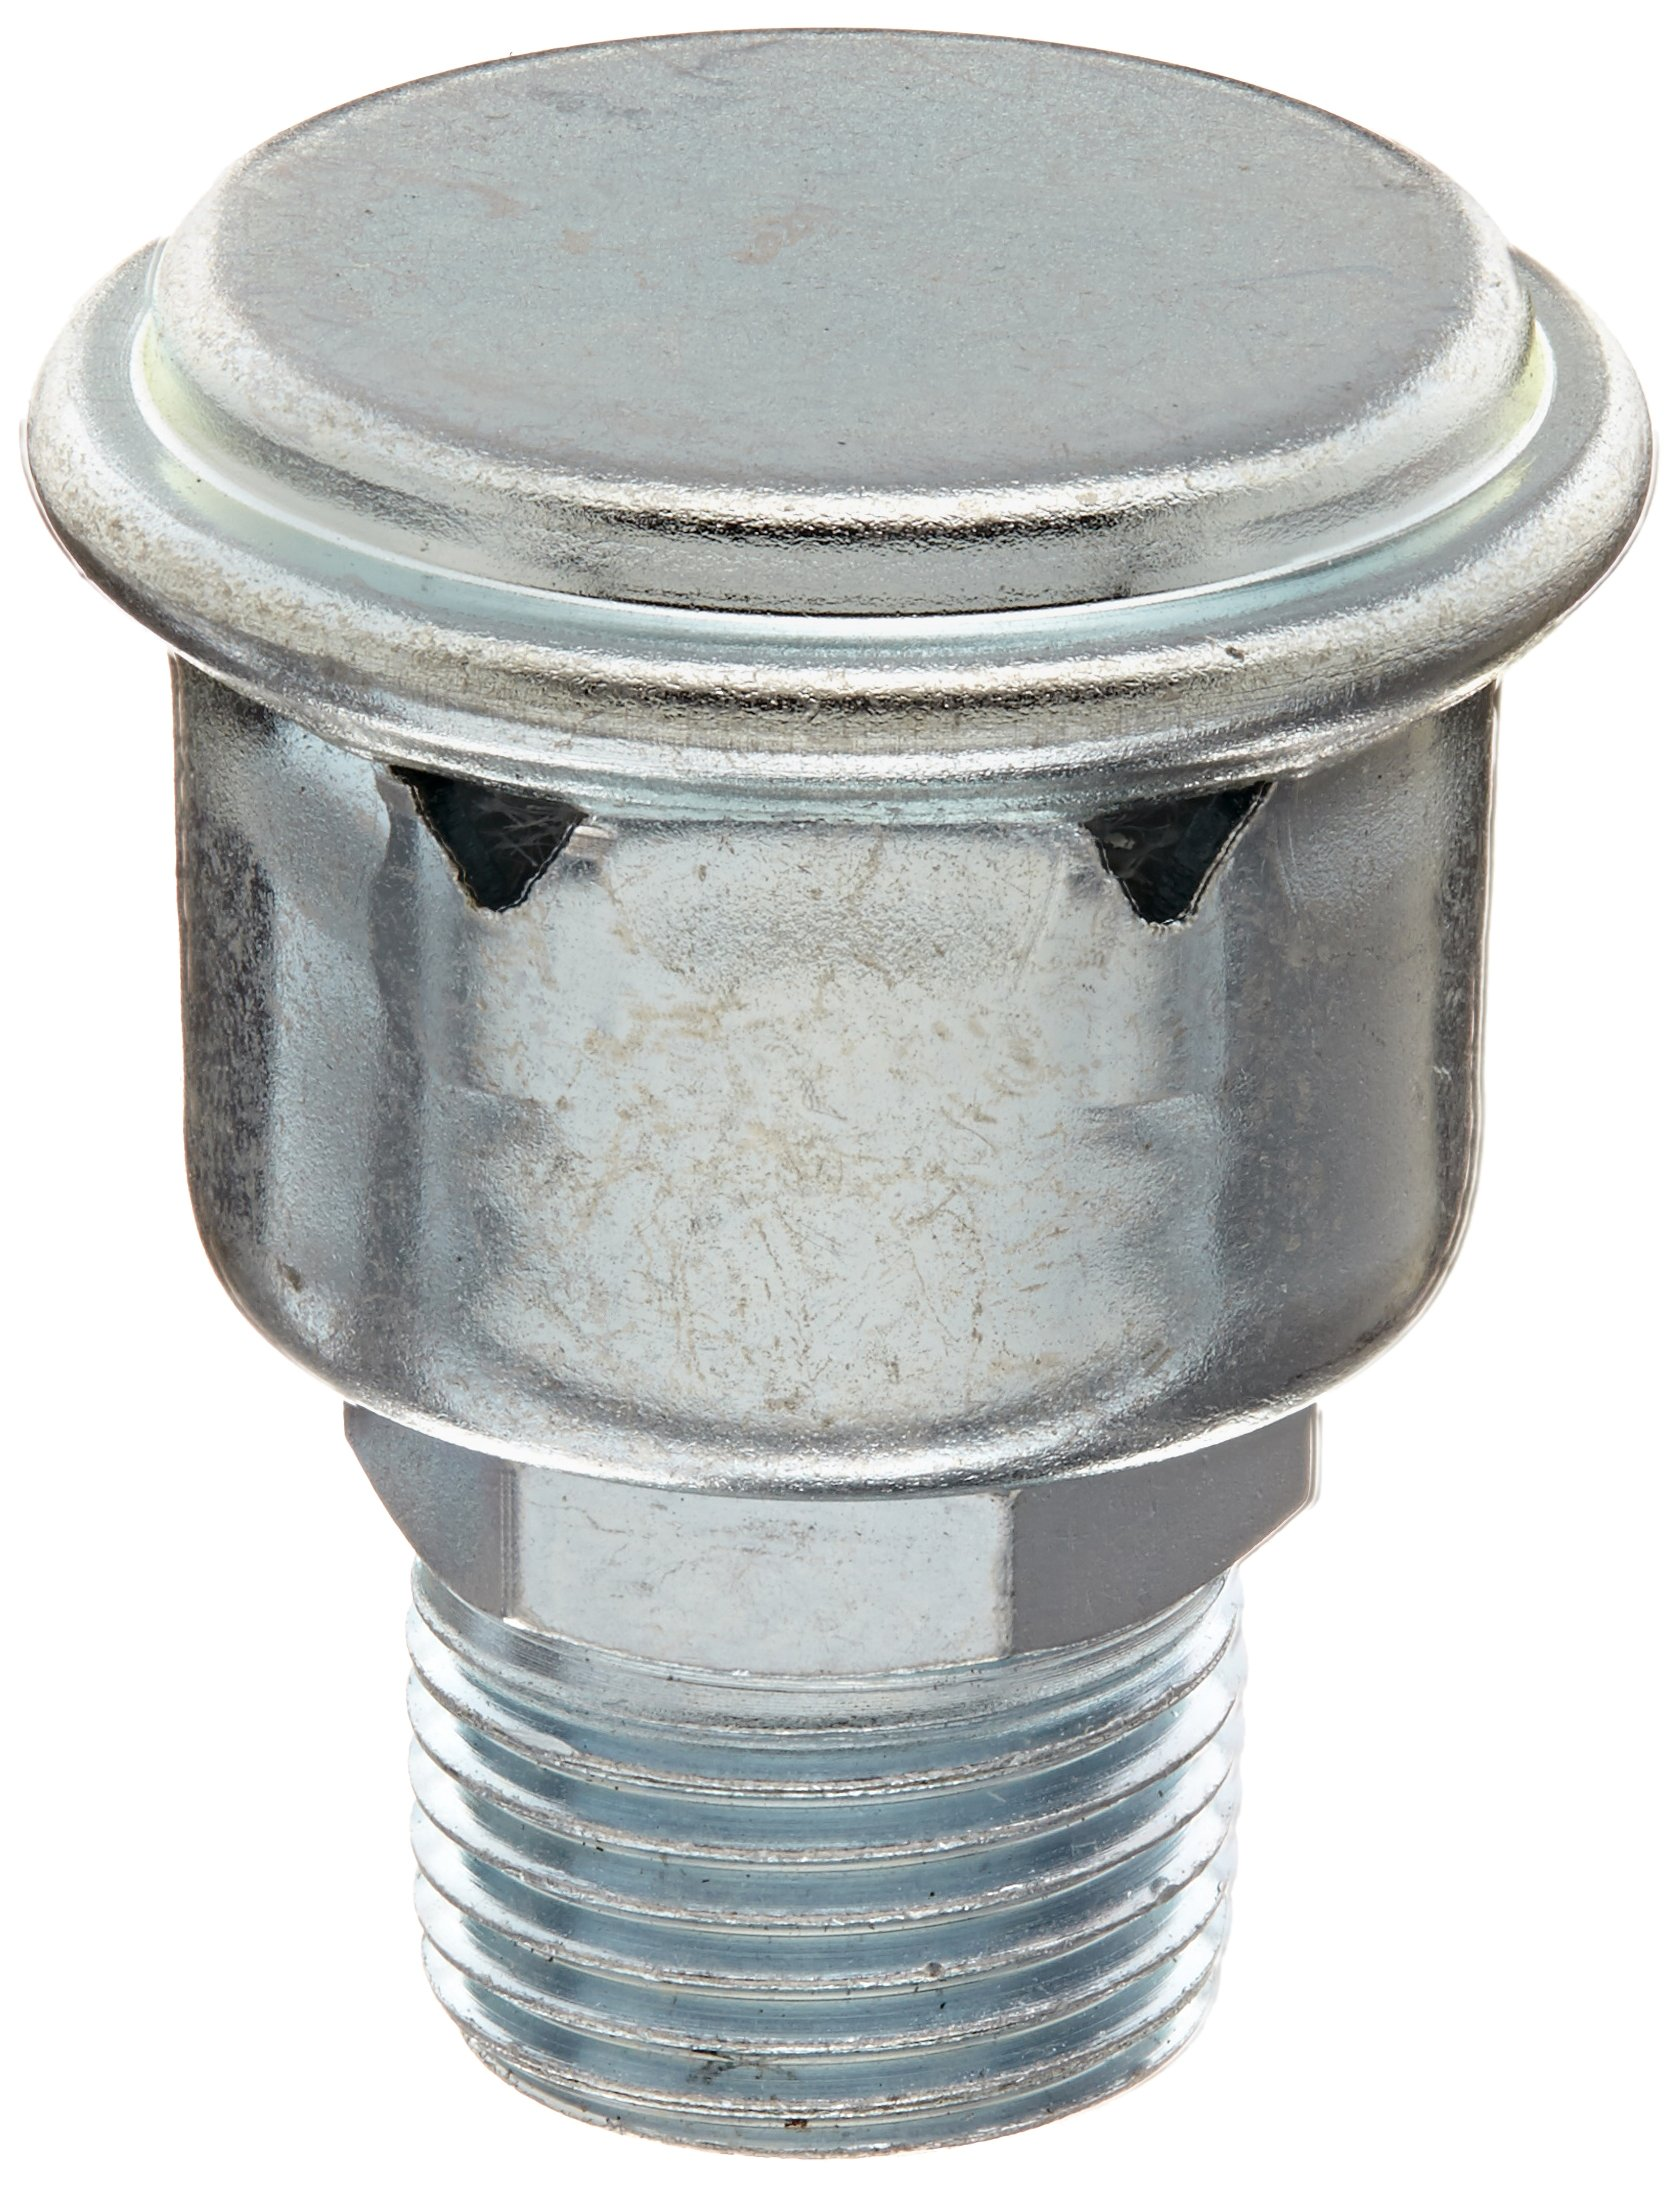 Gits 1637-037800 Style 1637 Breather Vent, 3/8-18 NPT Breather with Screen and Nylon Filter by Gits Manufacturing